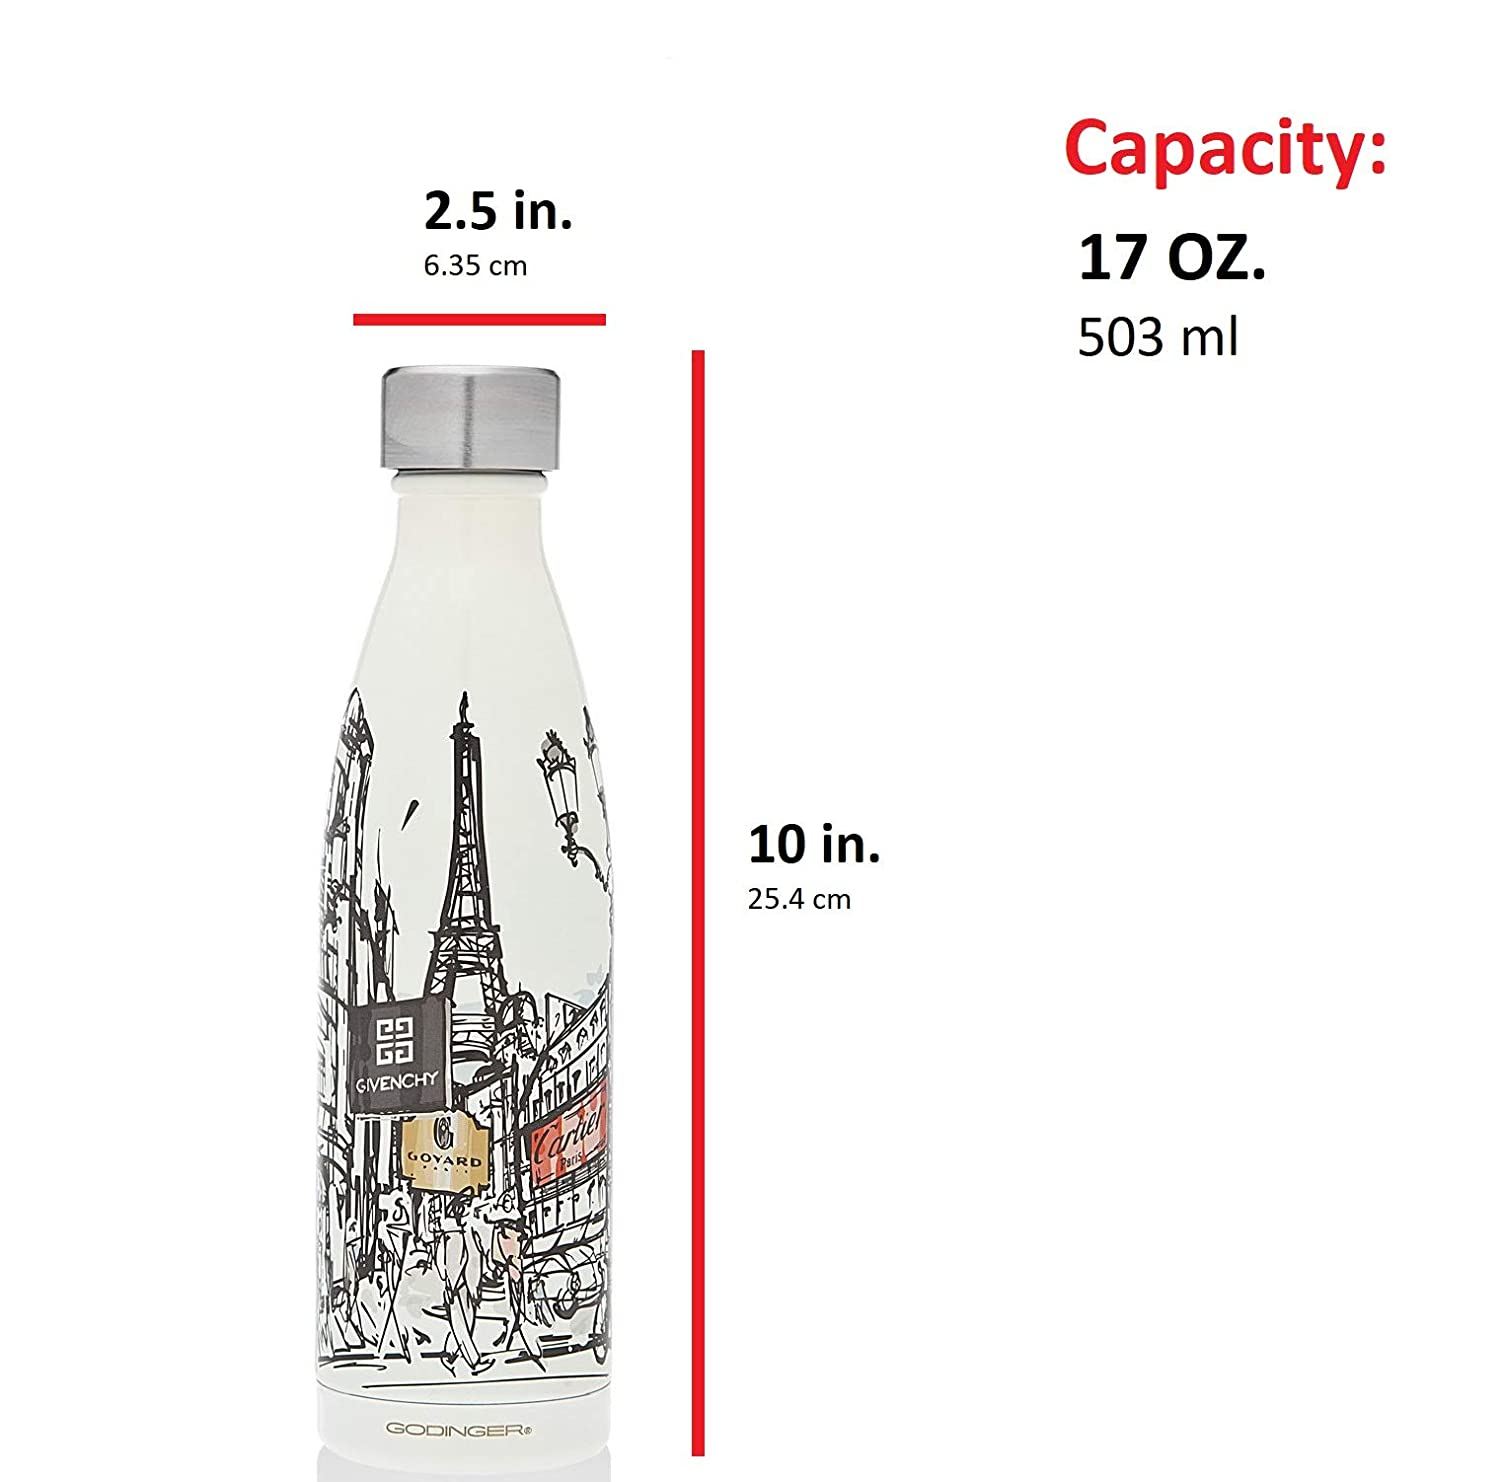 Double Walled to Keep Your Drinks hot or Cold Perfect for Travel 17 oz. Godinger Insulated Stainless-Steel Water Bottle Leak-Proof